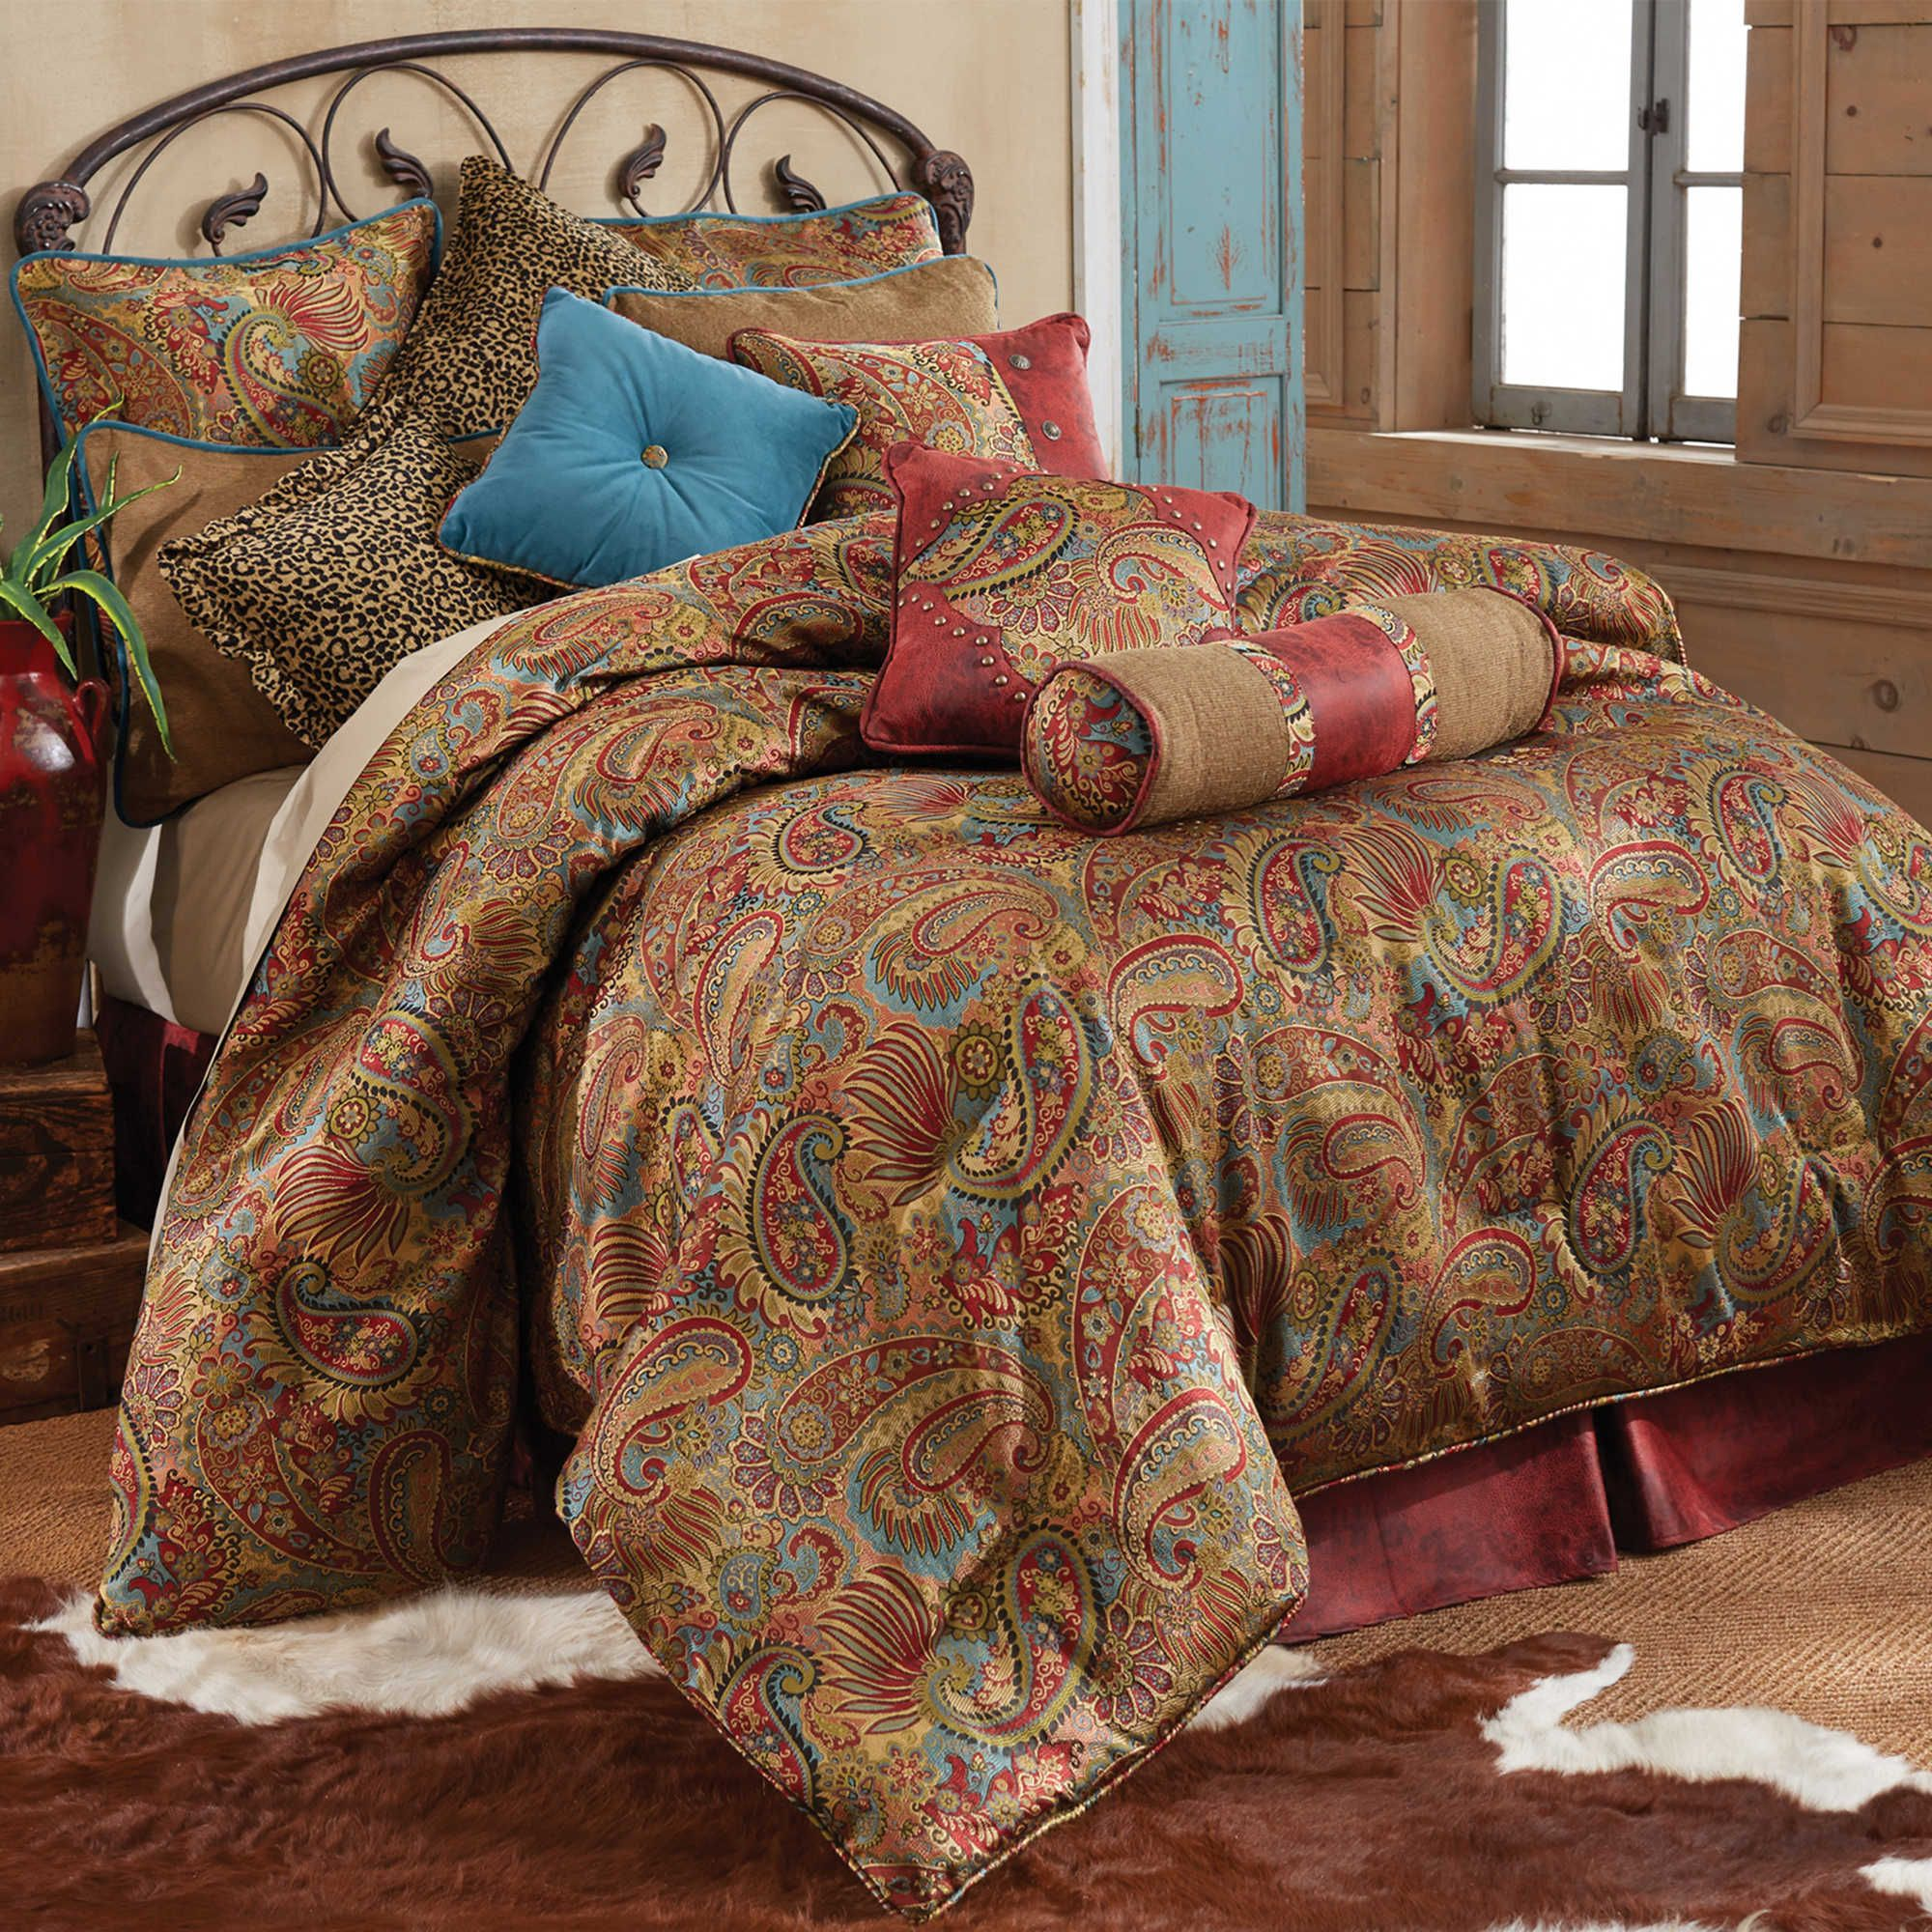 comforters ip set bedding comforter red mainstays winter printed walmart com cabin quilt green